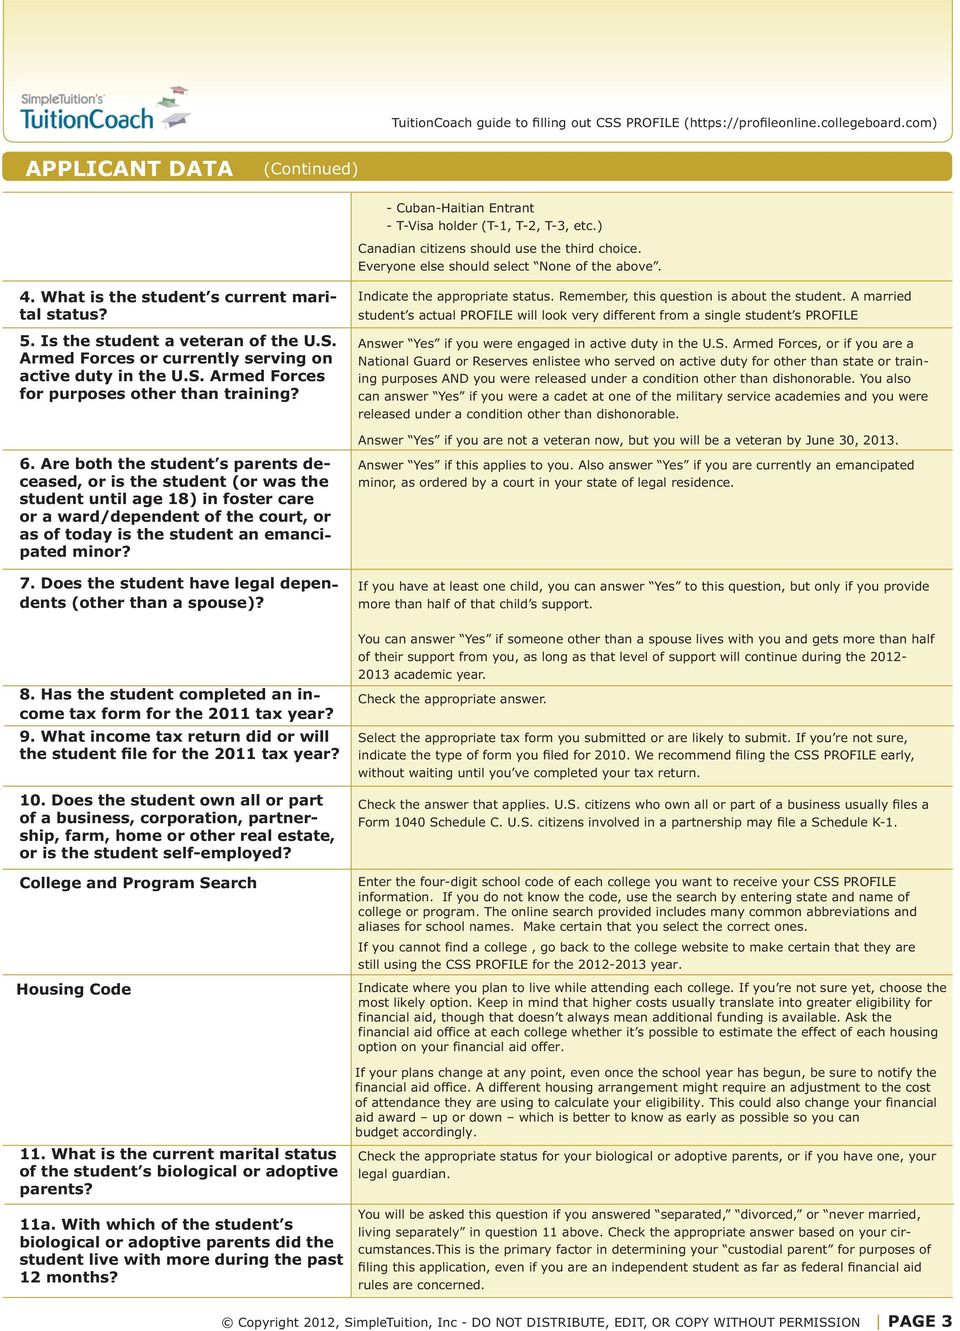 Worksheets Css Profile Worksheet css profile worksheet super teacher worksheets worksheethow to plan for college financial aid ppt download